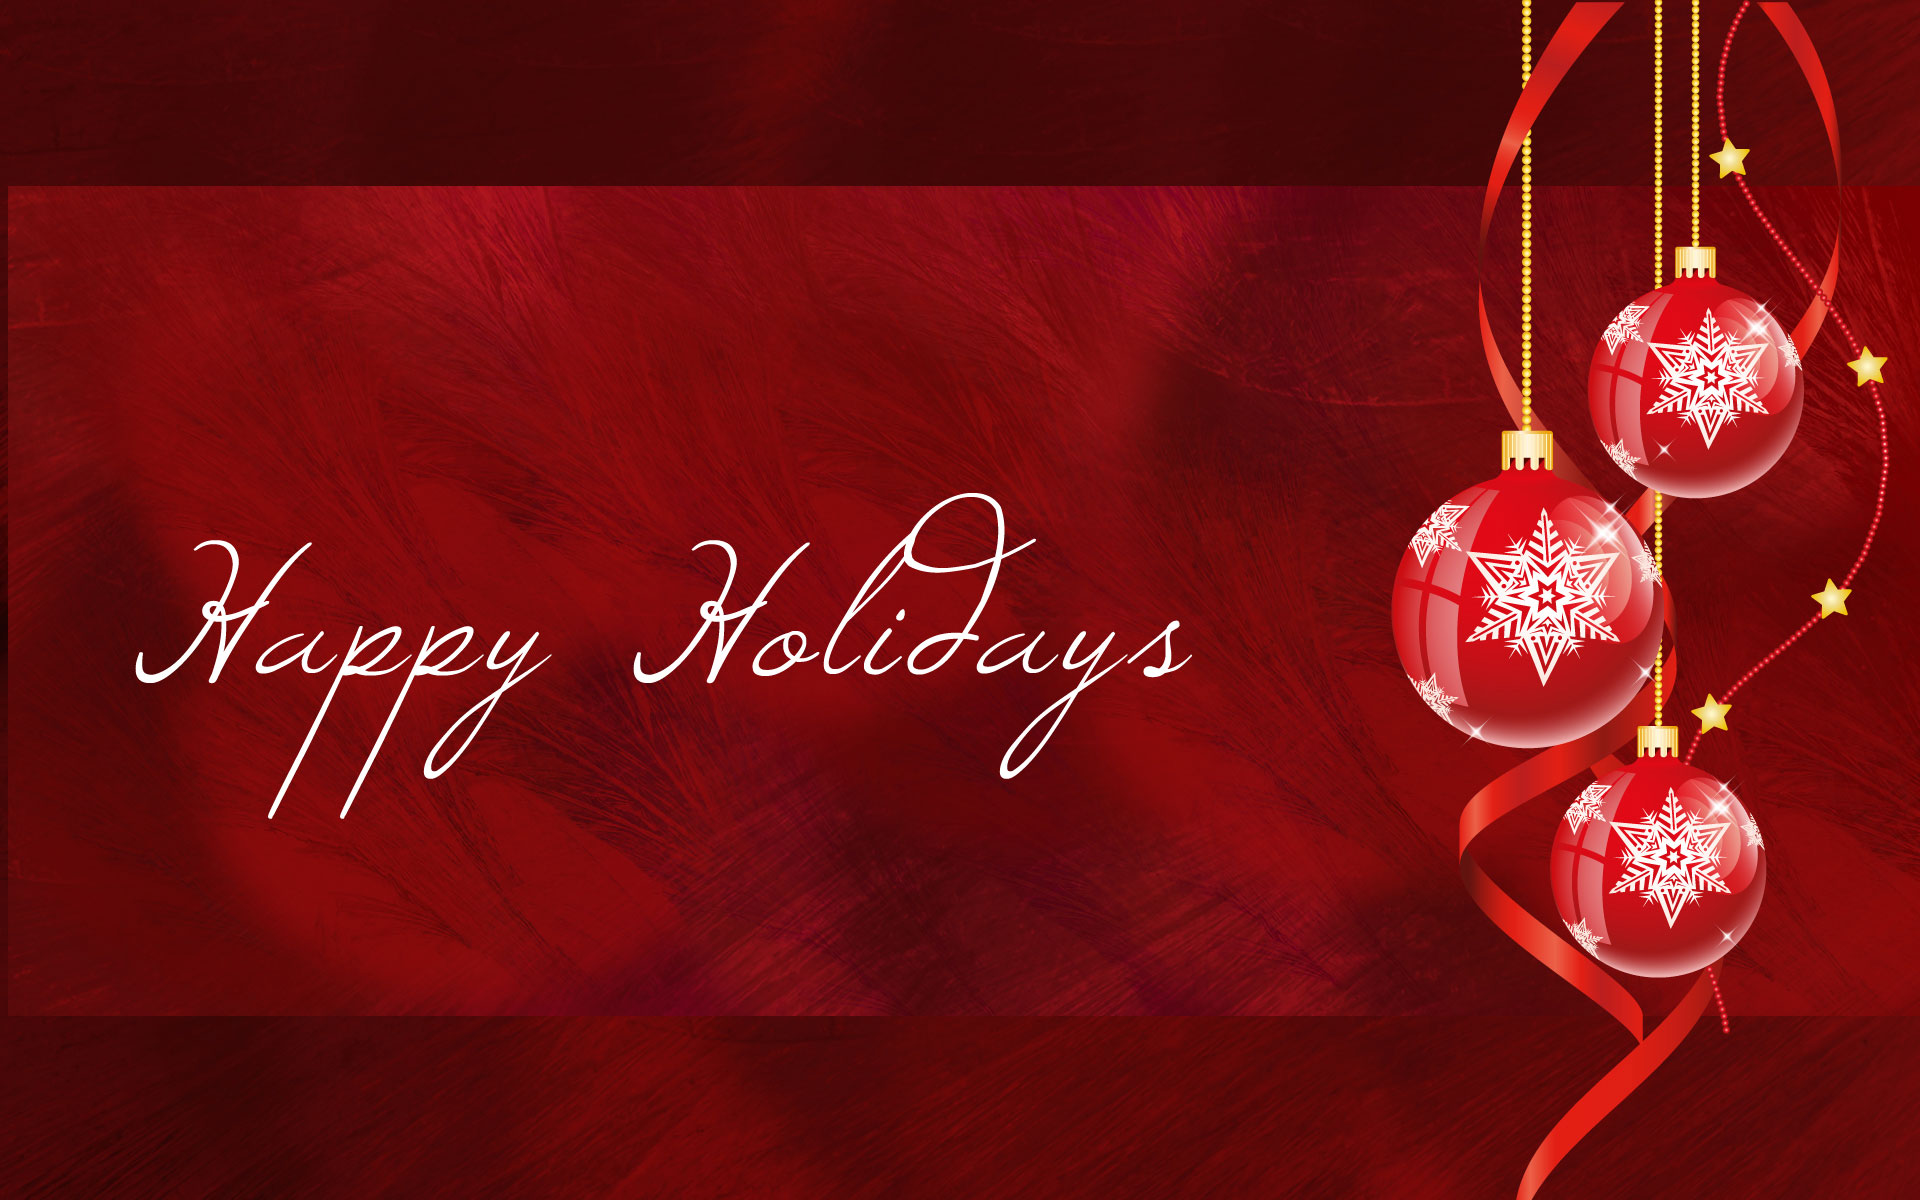 Happy-Holidays-and-a-Merry-New-Year-from-improveit-360.jpg